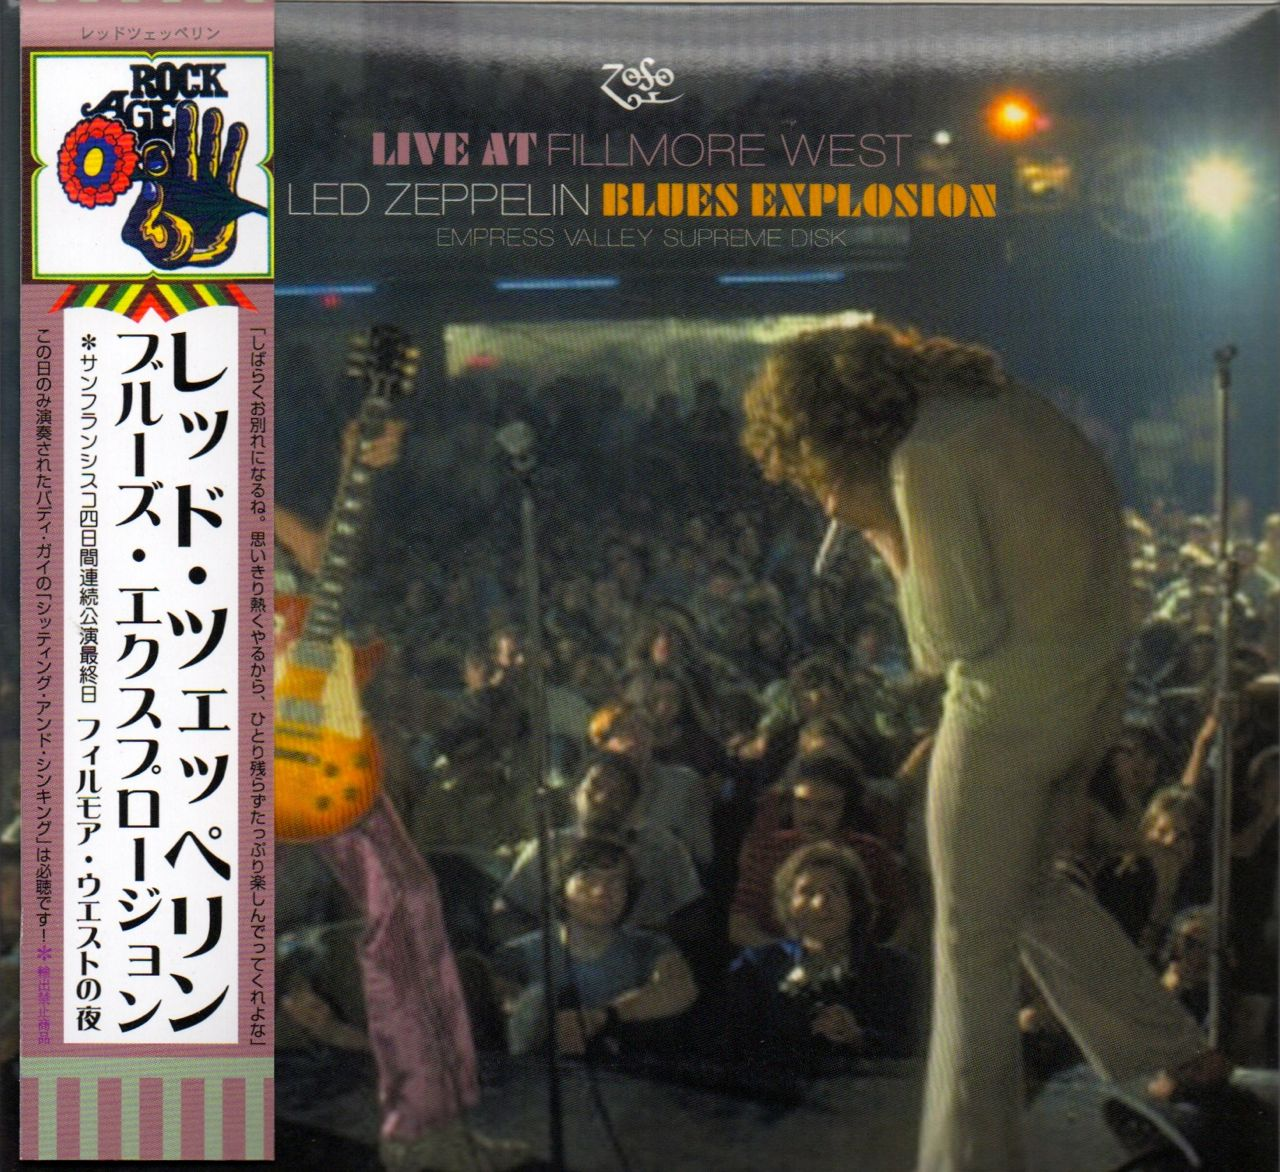 Silver Train:LED ZEPPELIN / LIVE AT FILLMORE WEST / BLUES EXPLOSION